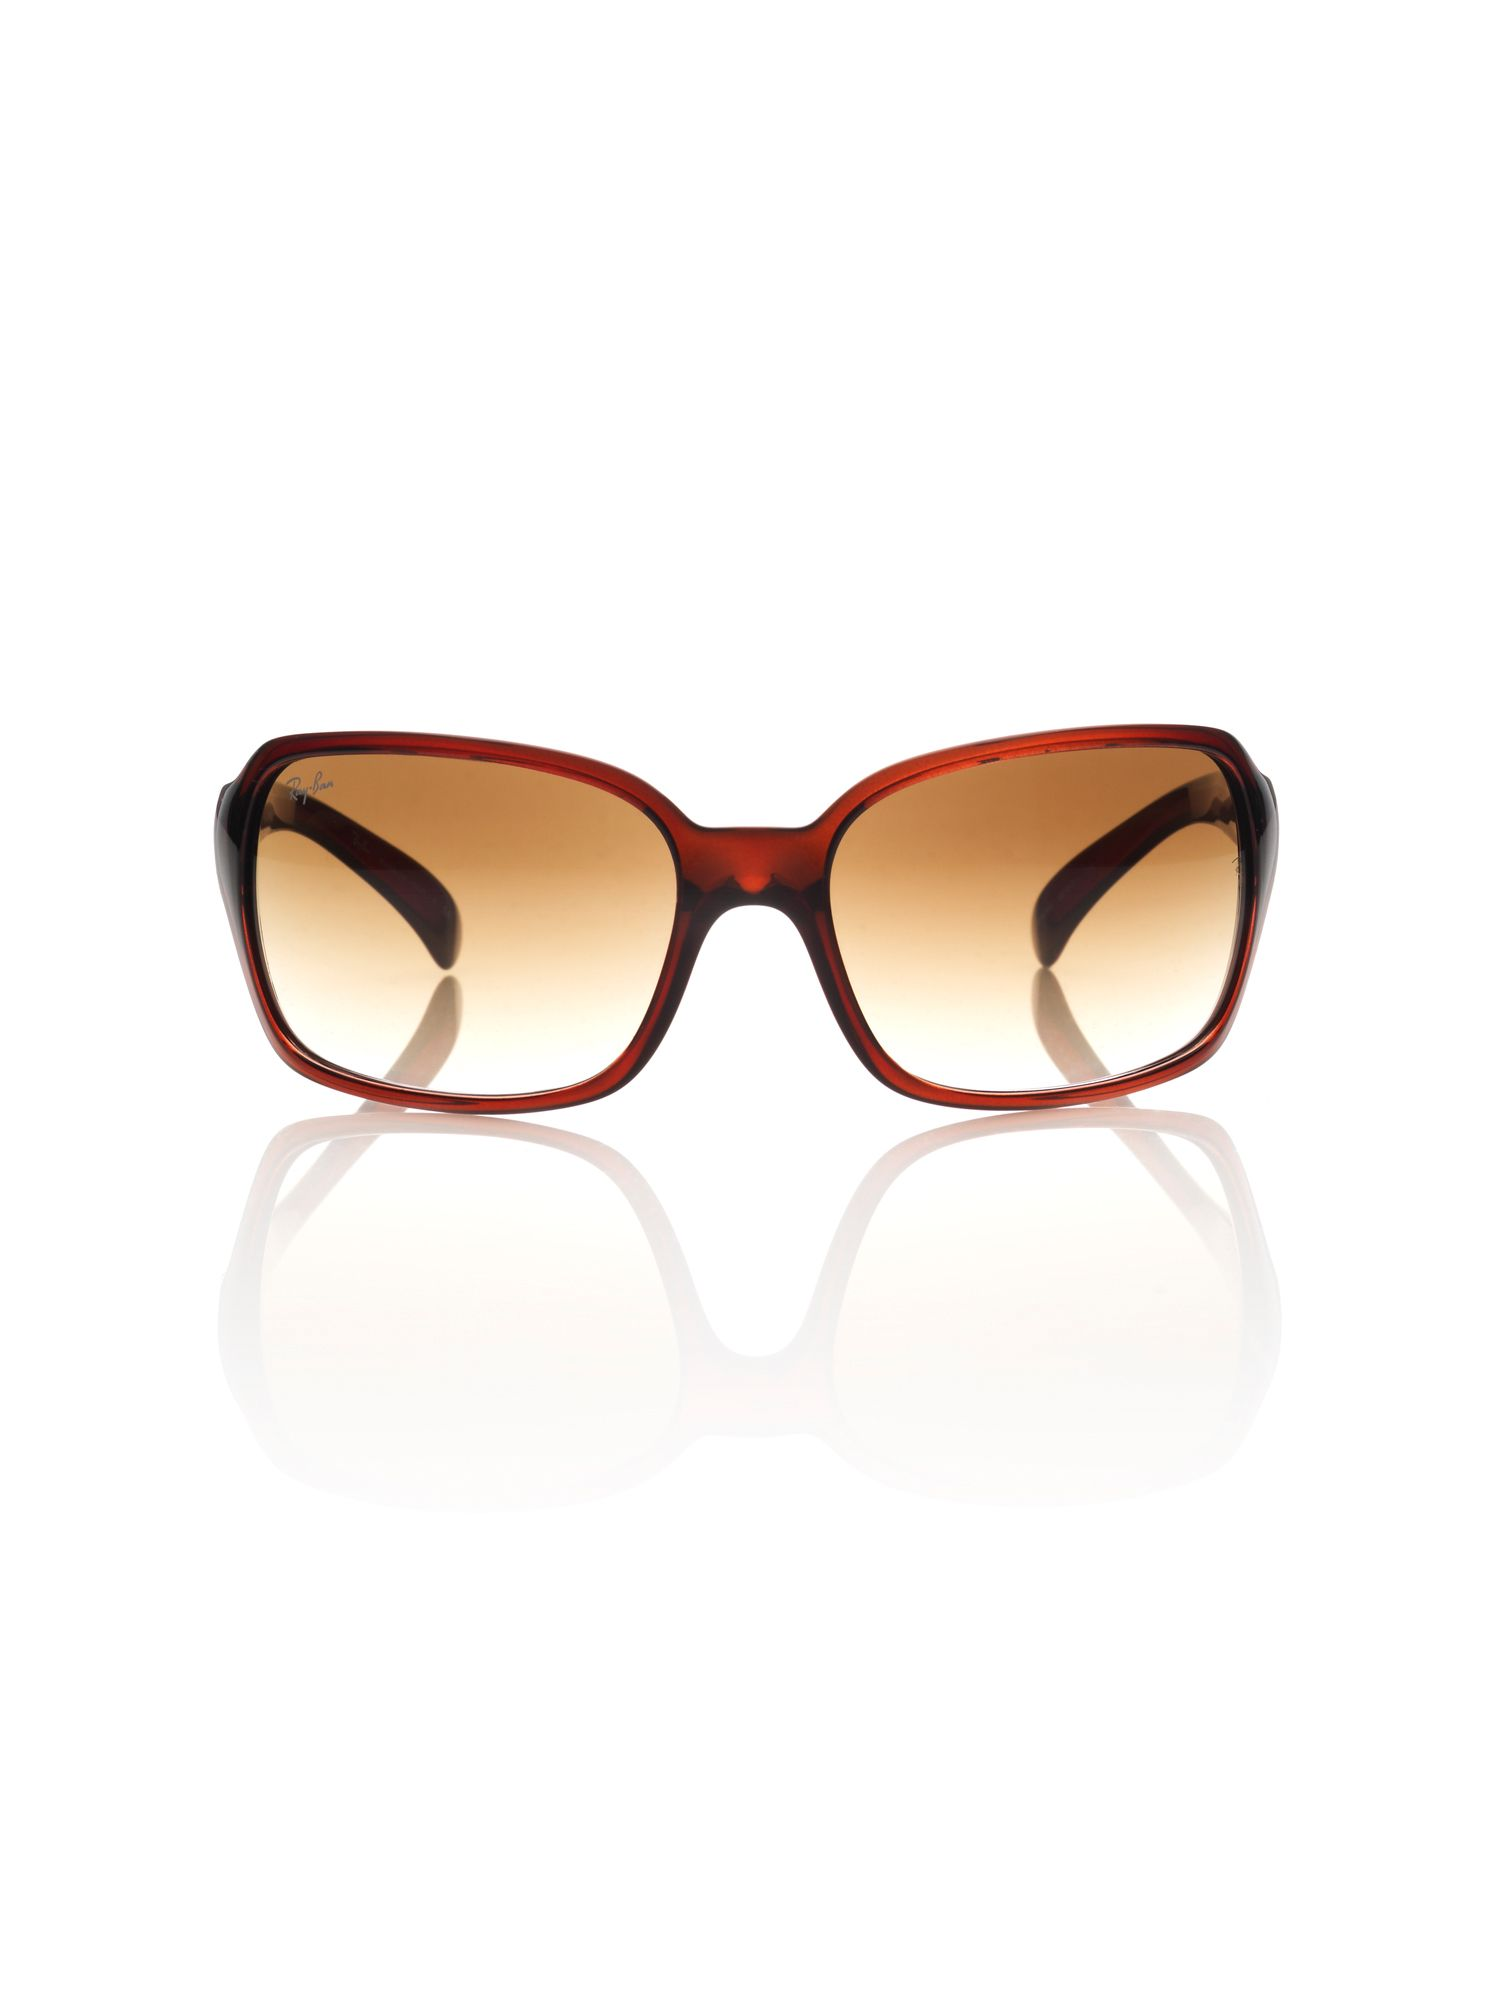 Unisex RB4068 Square Sunglasses